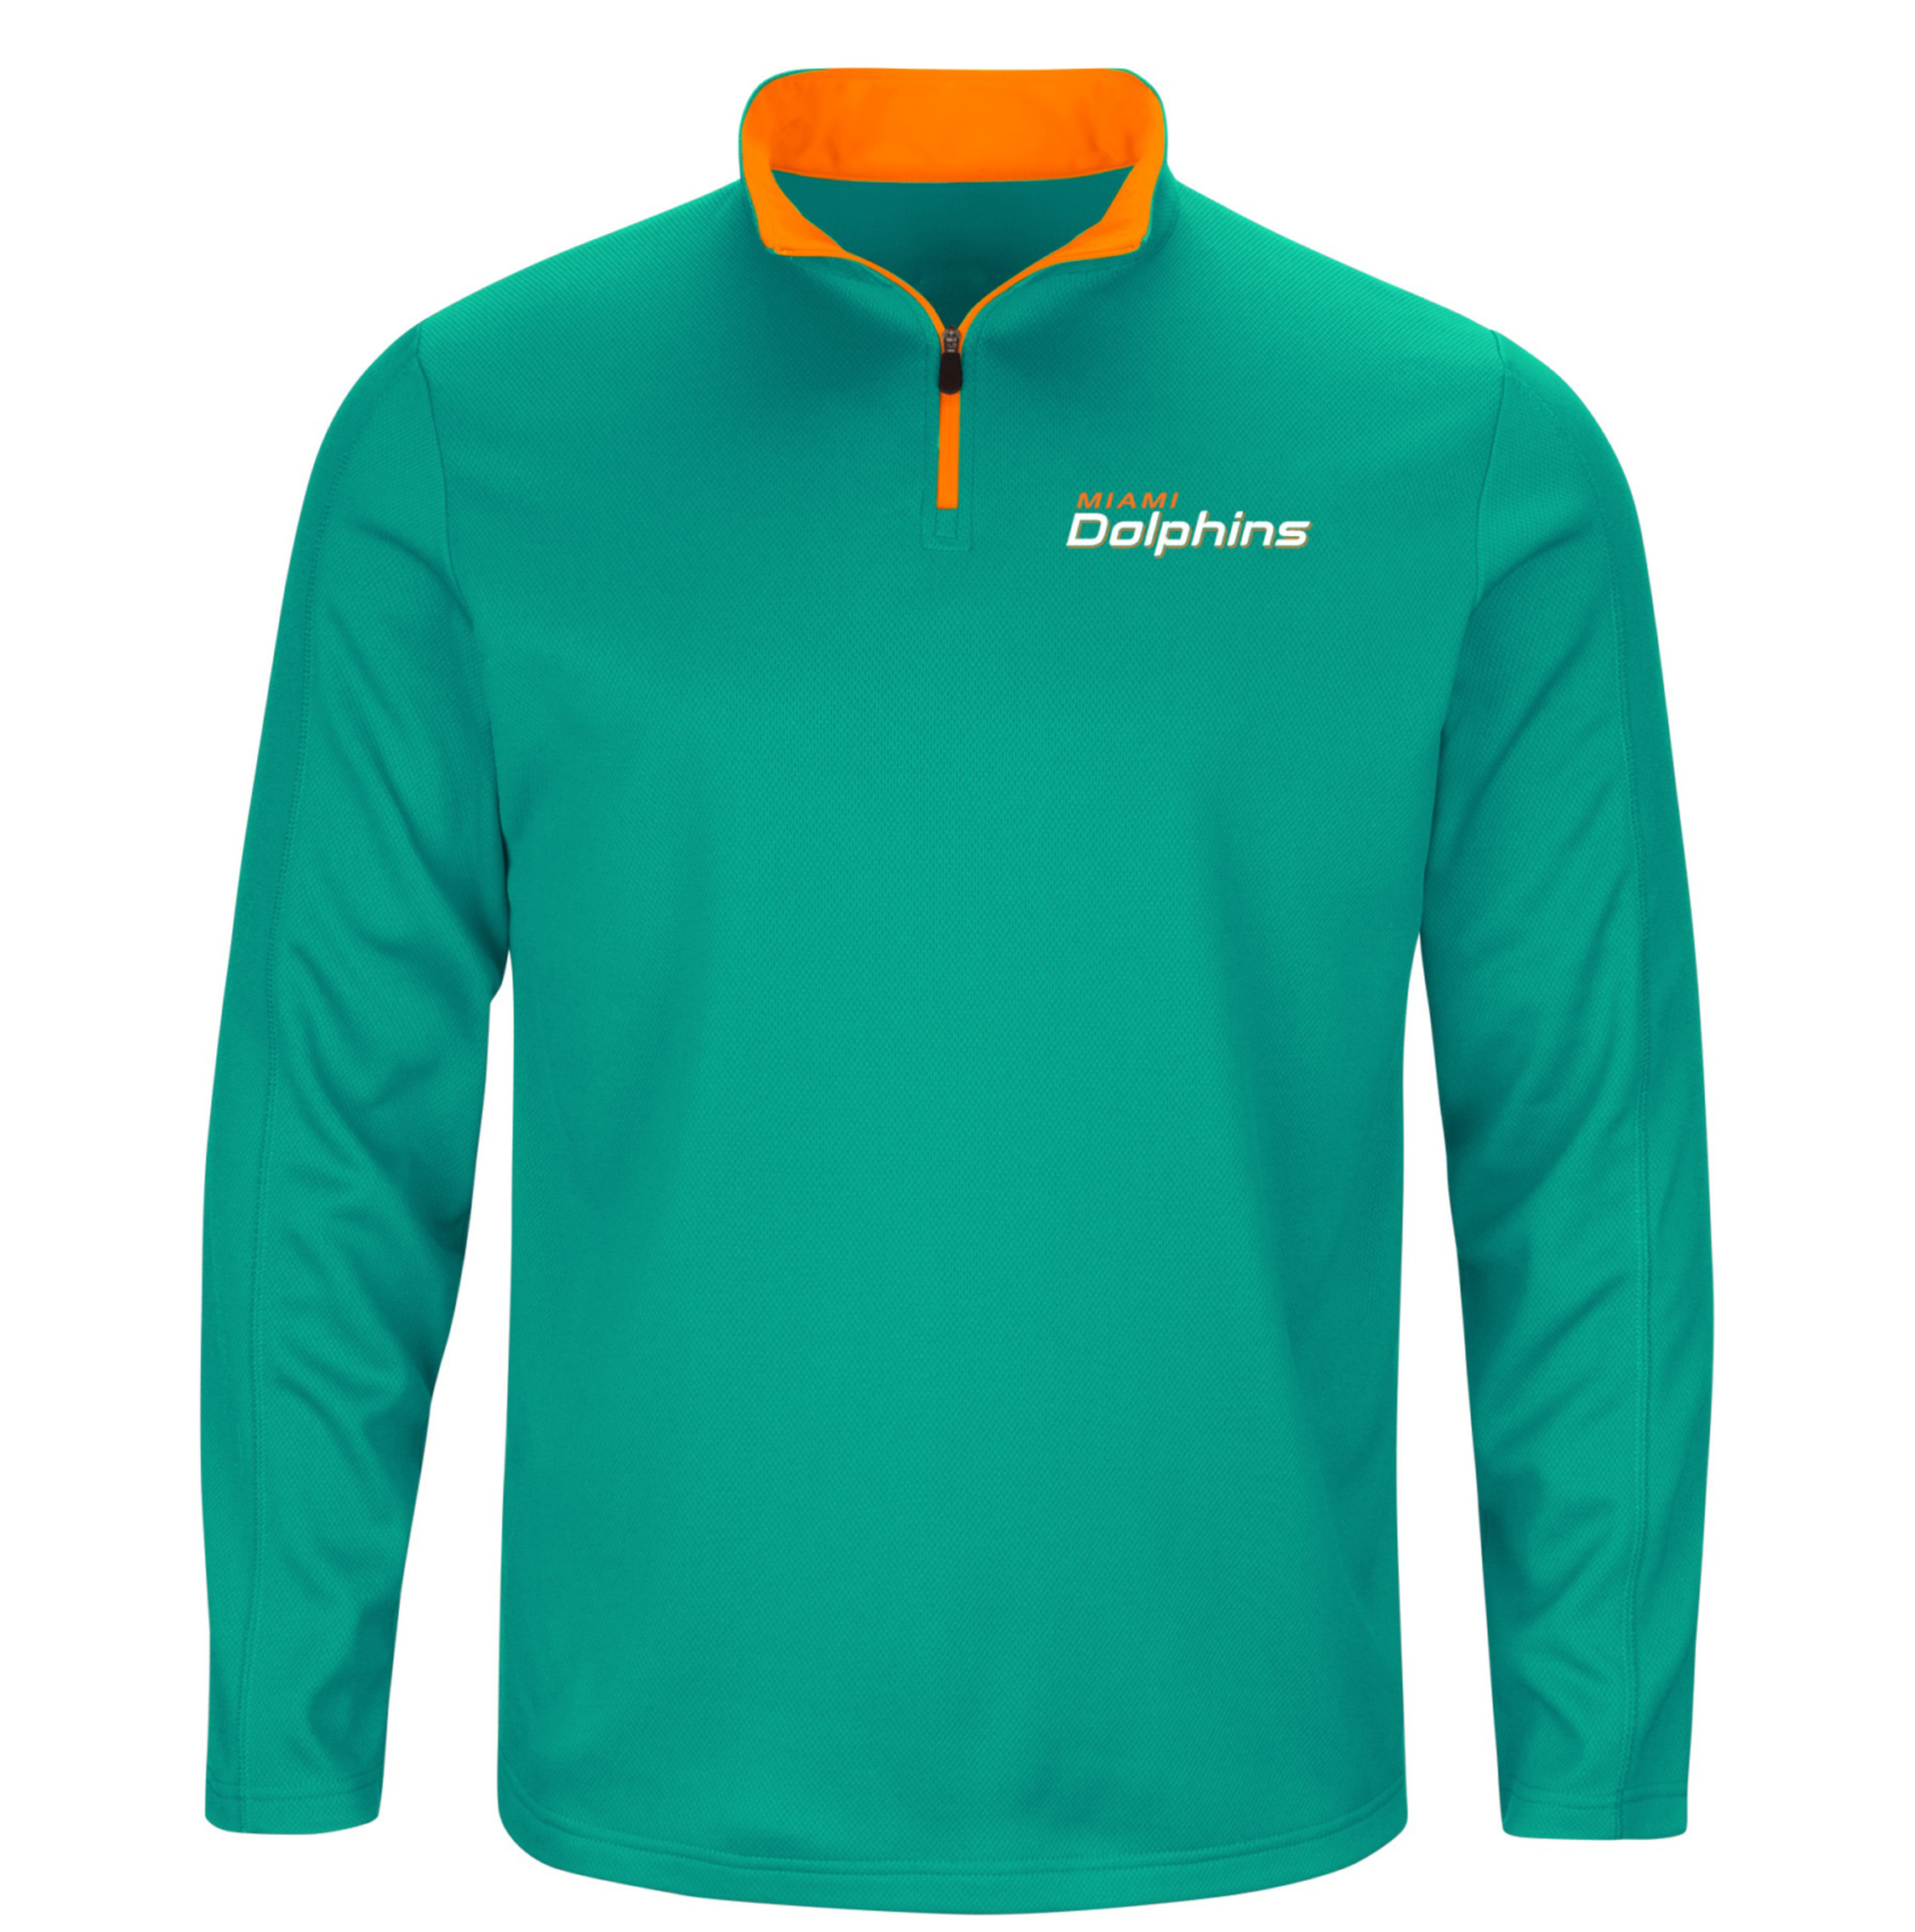 NFL Miami Dolphins Delivering Victory Men's 1/4 Zip Fleece